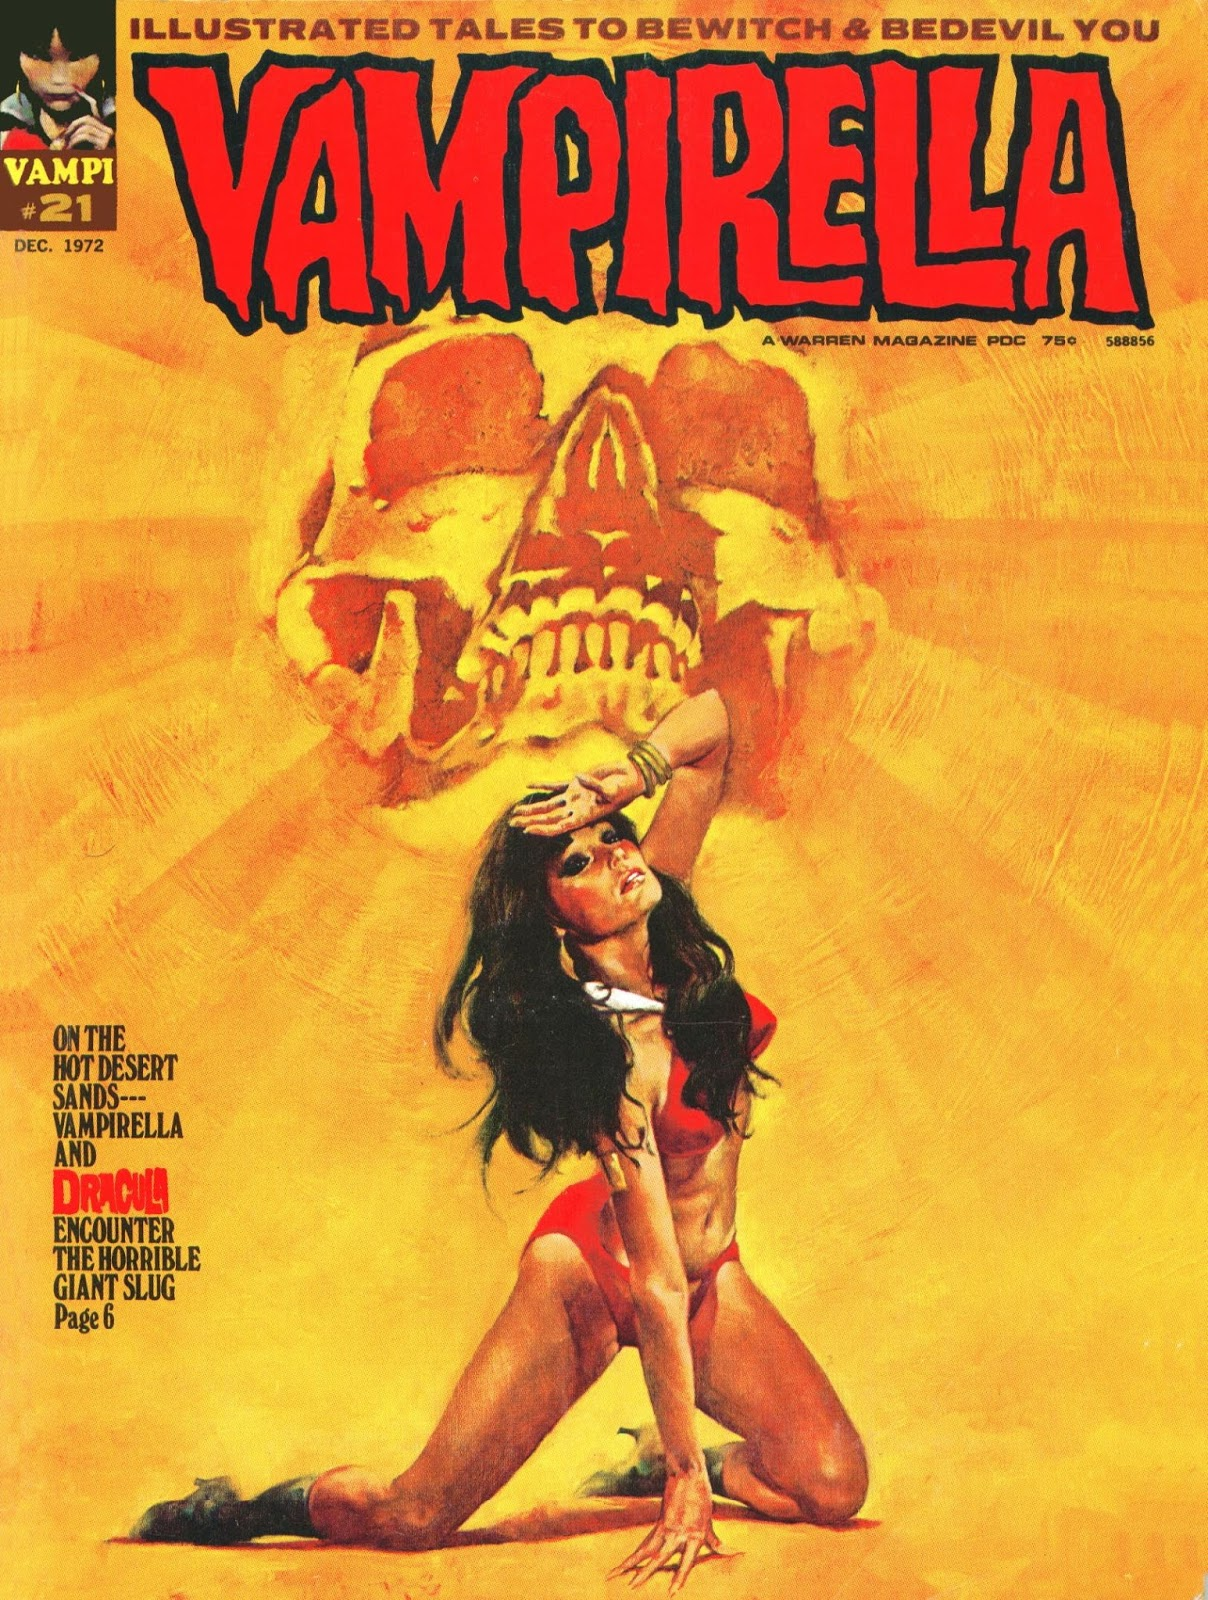 Images: A Wonderful Collection Of Sexy Covers From The Classic Horror Comic Book Vampirella 1972-1973